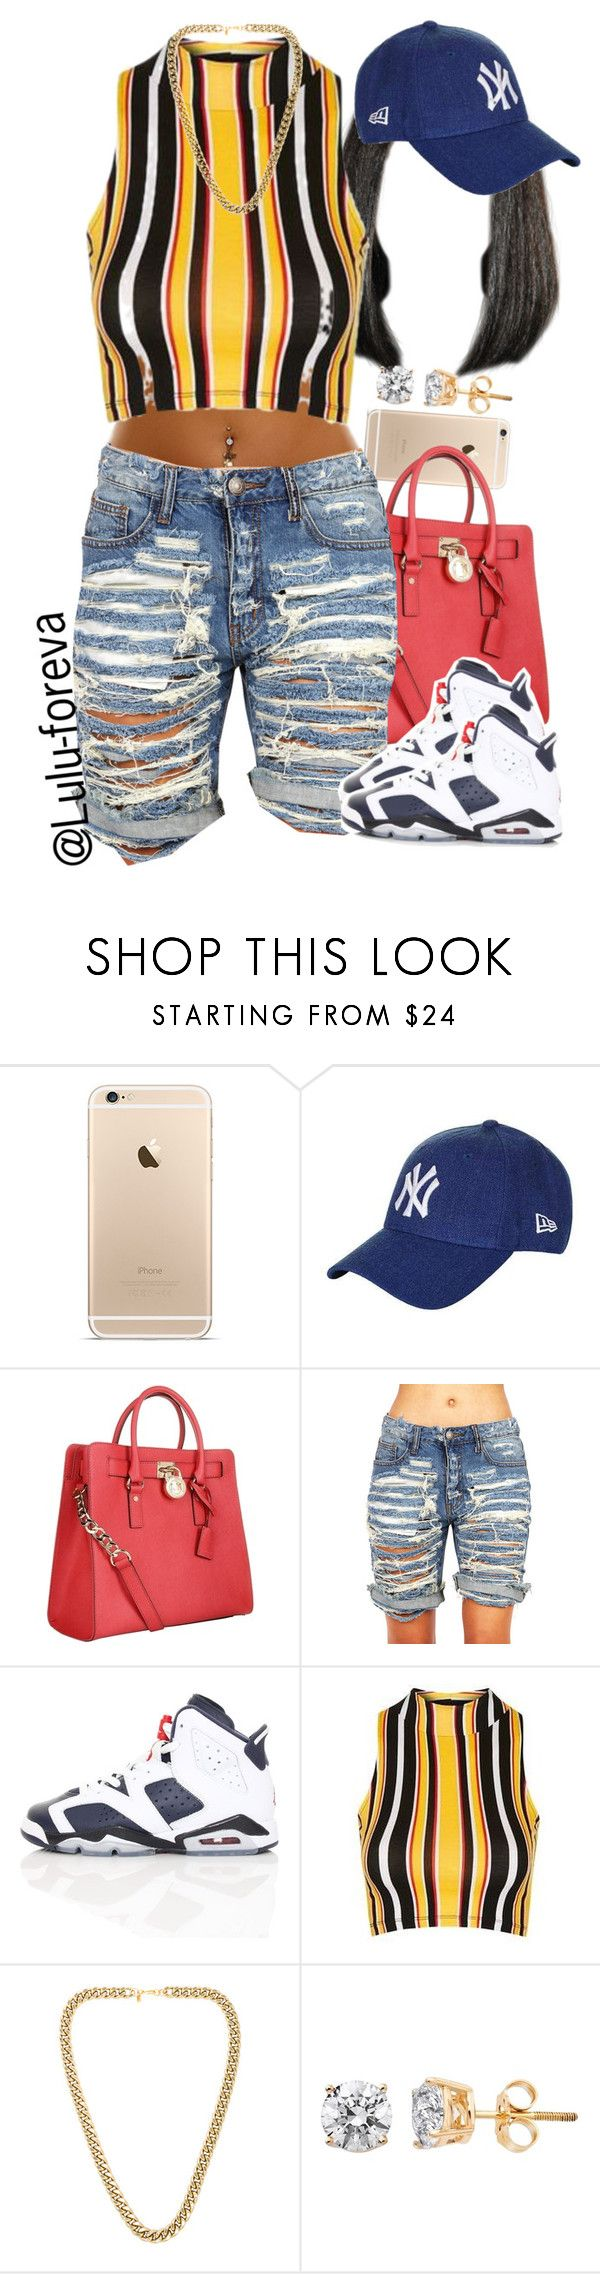 """""""Drop Snapchat Names Below !!"""" by lulu-foreva ❤ liked on Polyvore featuring Topshop, Michael Kors, NIKE and Kenneth Jay Lane"""